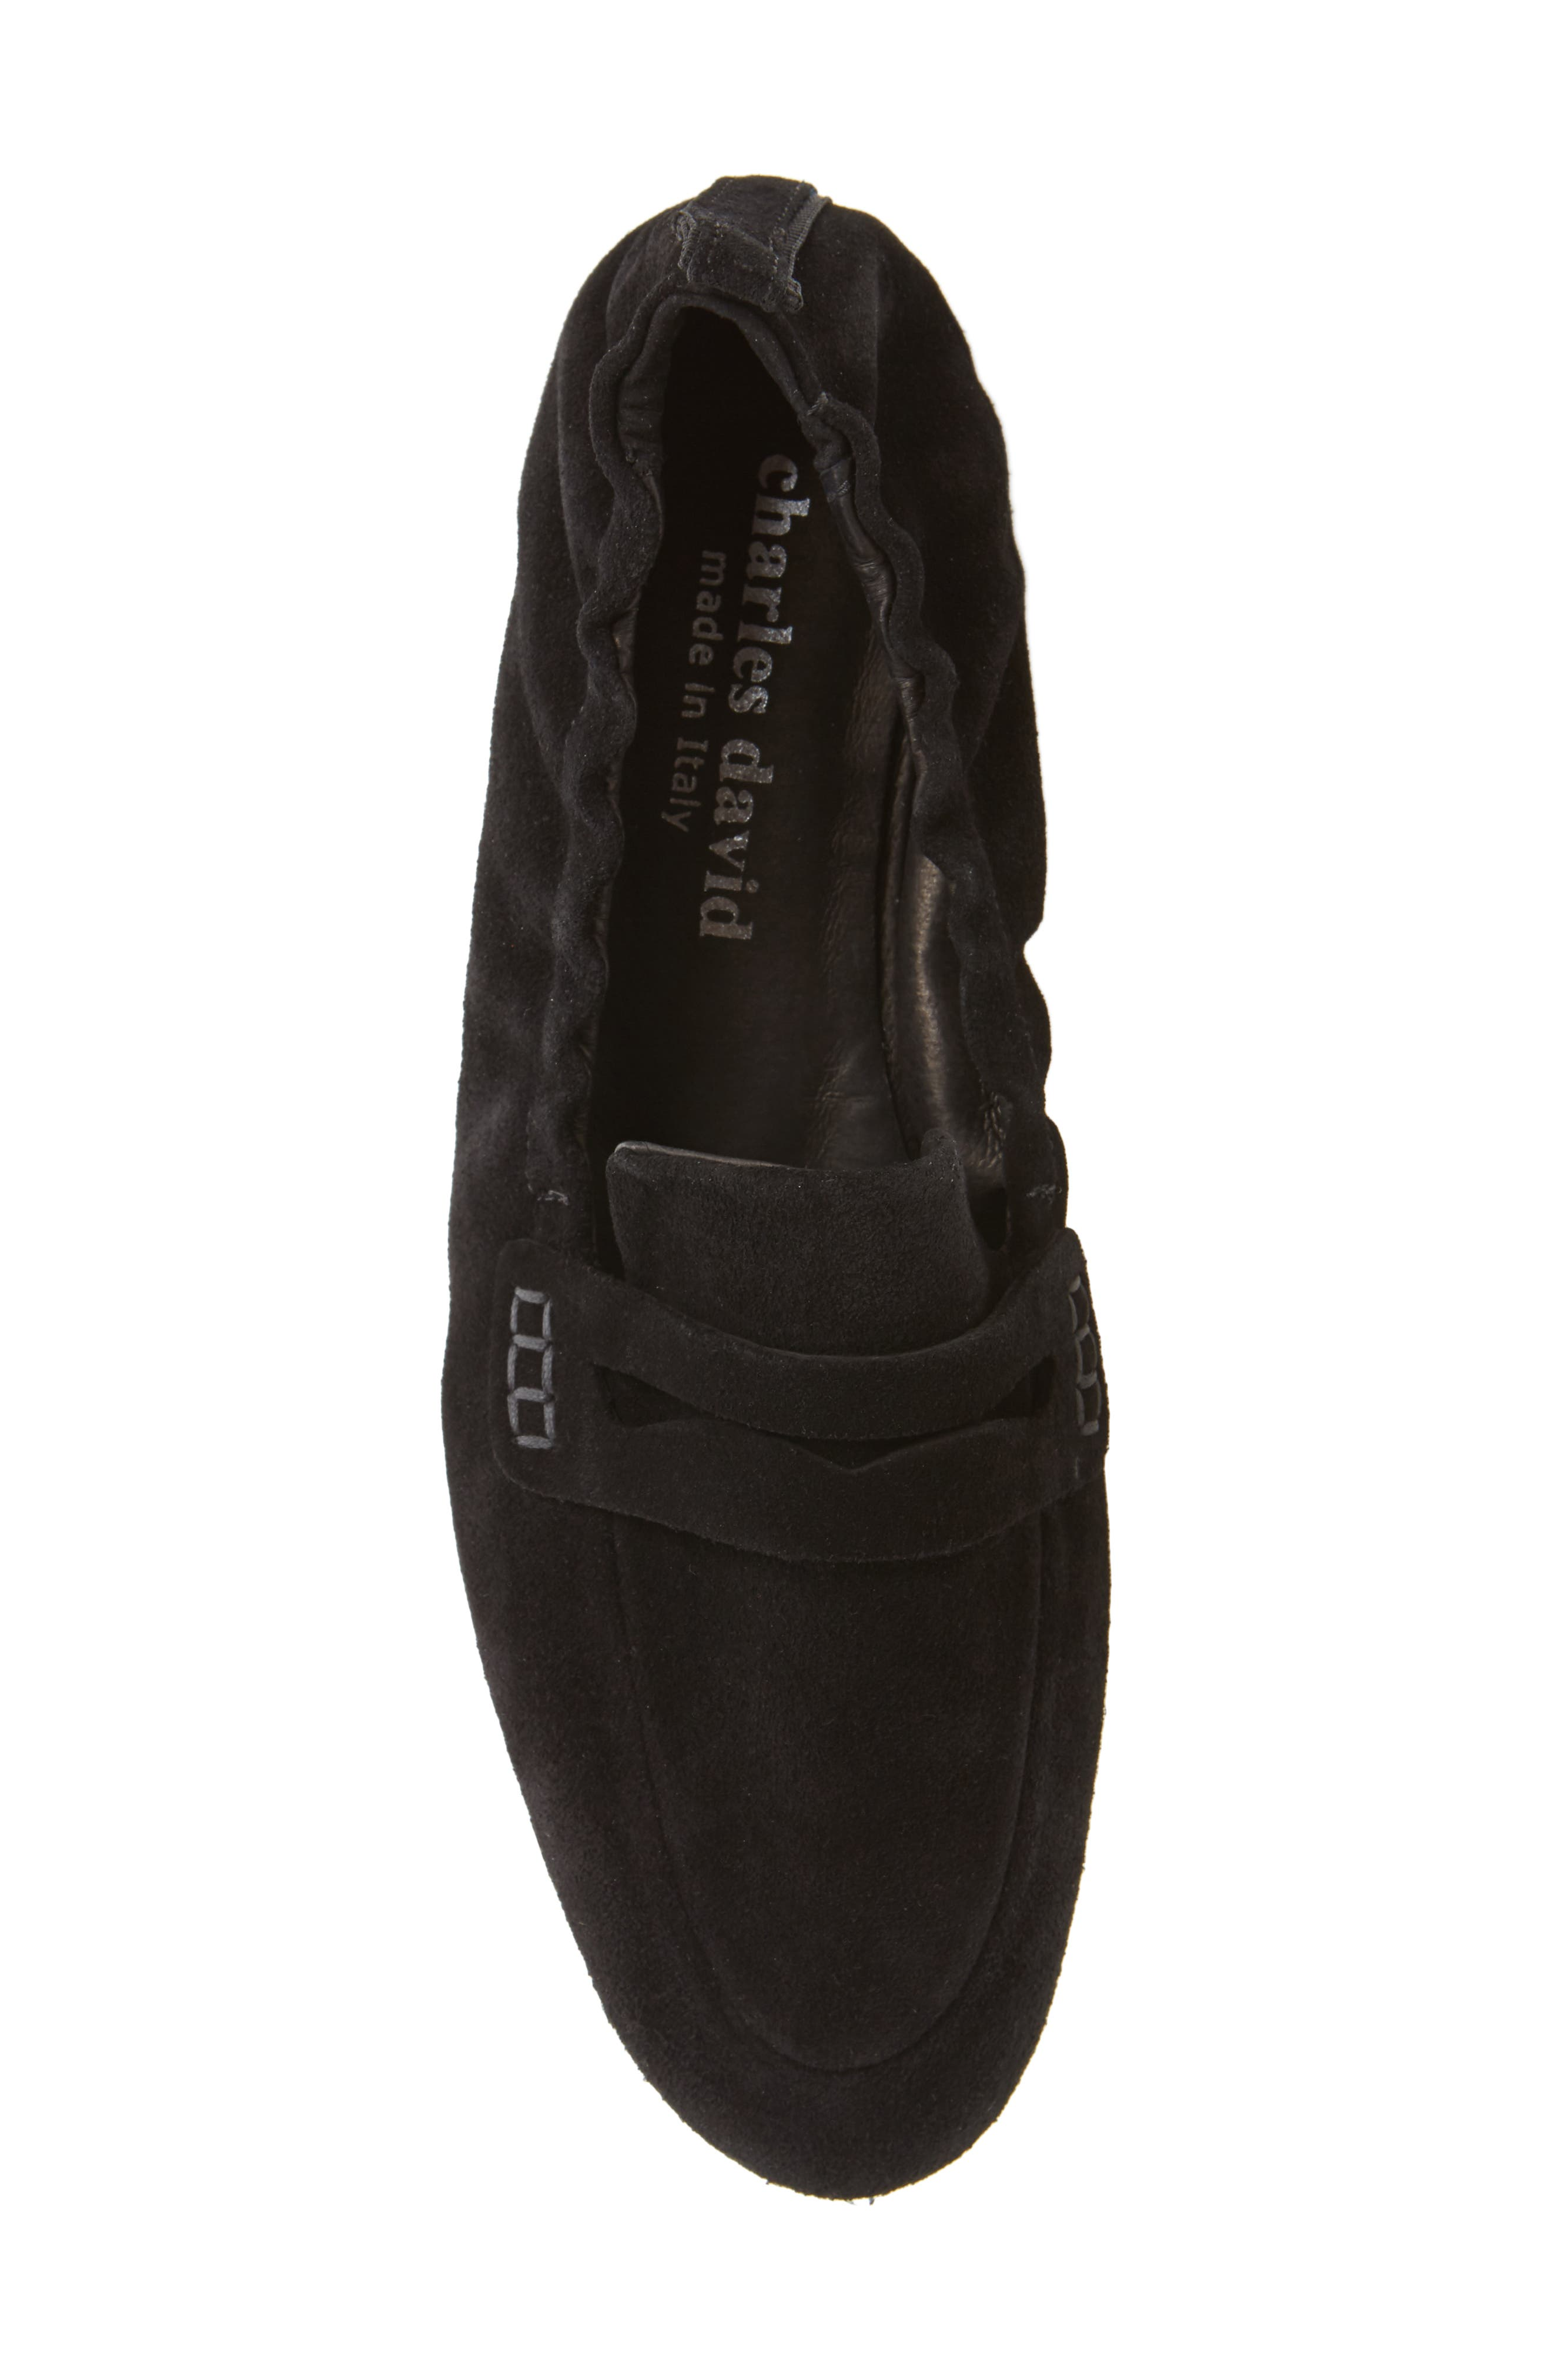 Milly Elastic Loafer Flat,                             Alternate thumbnail 5, color,                             Black Suede